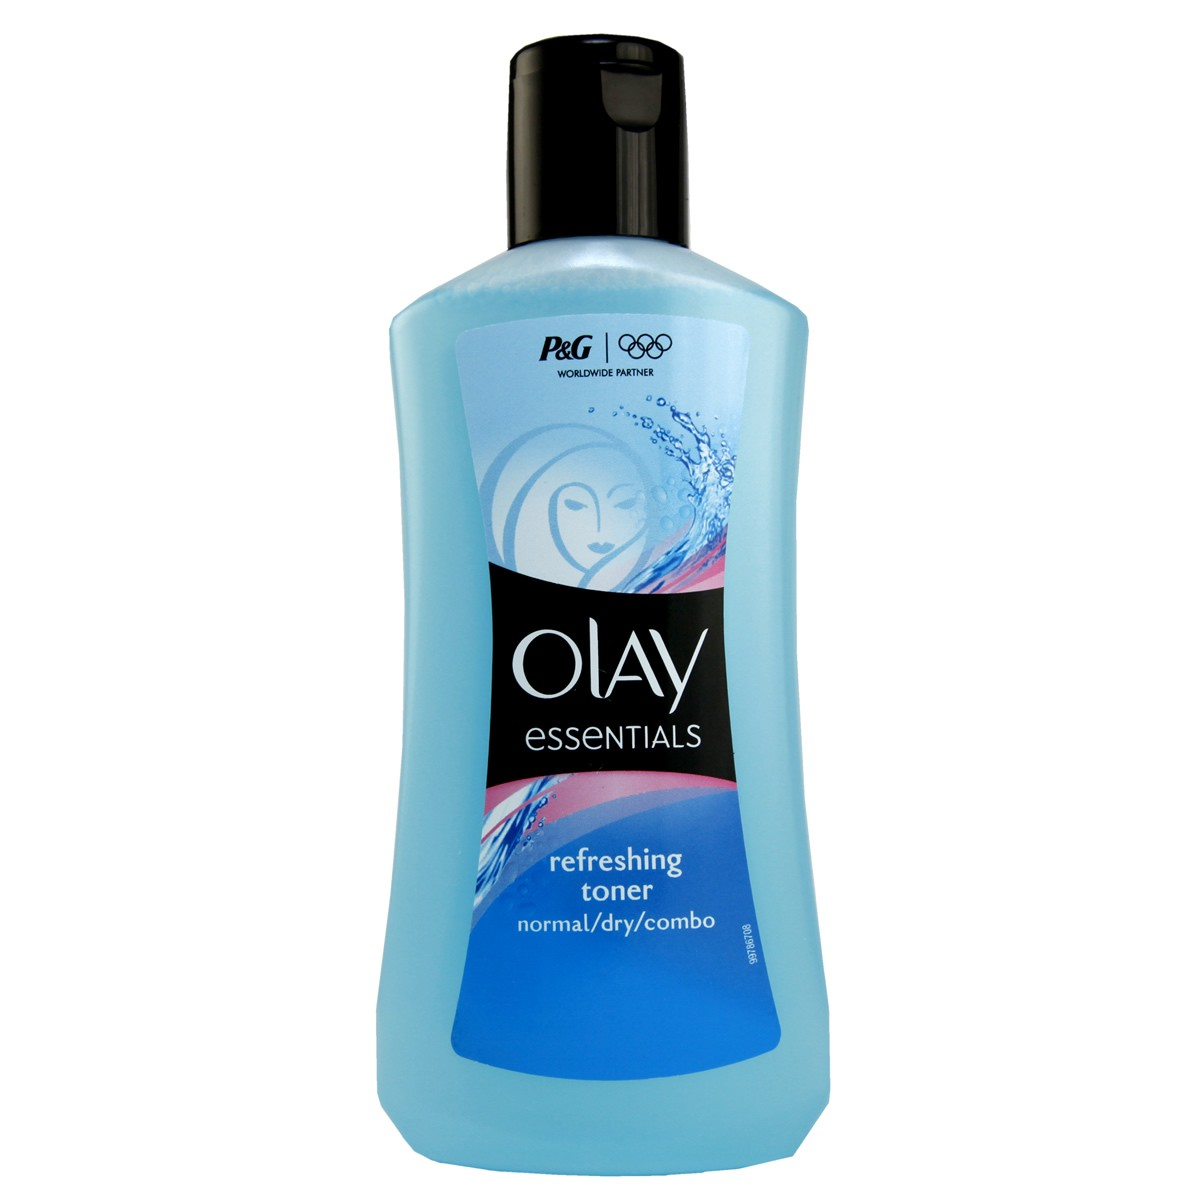 Olay Essentials Refreshing Toner Normal/Dry/Combination Skin